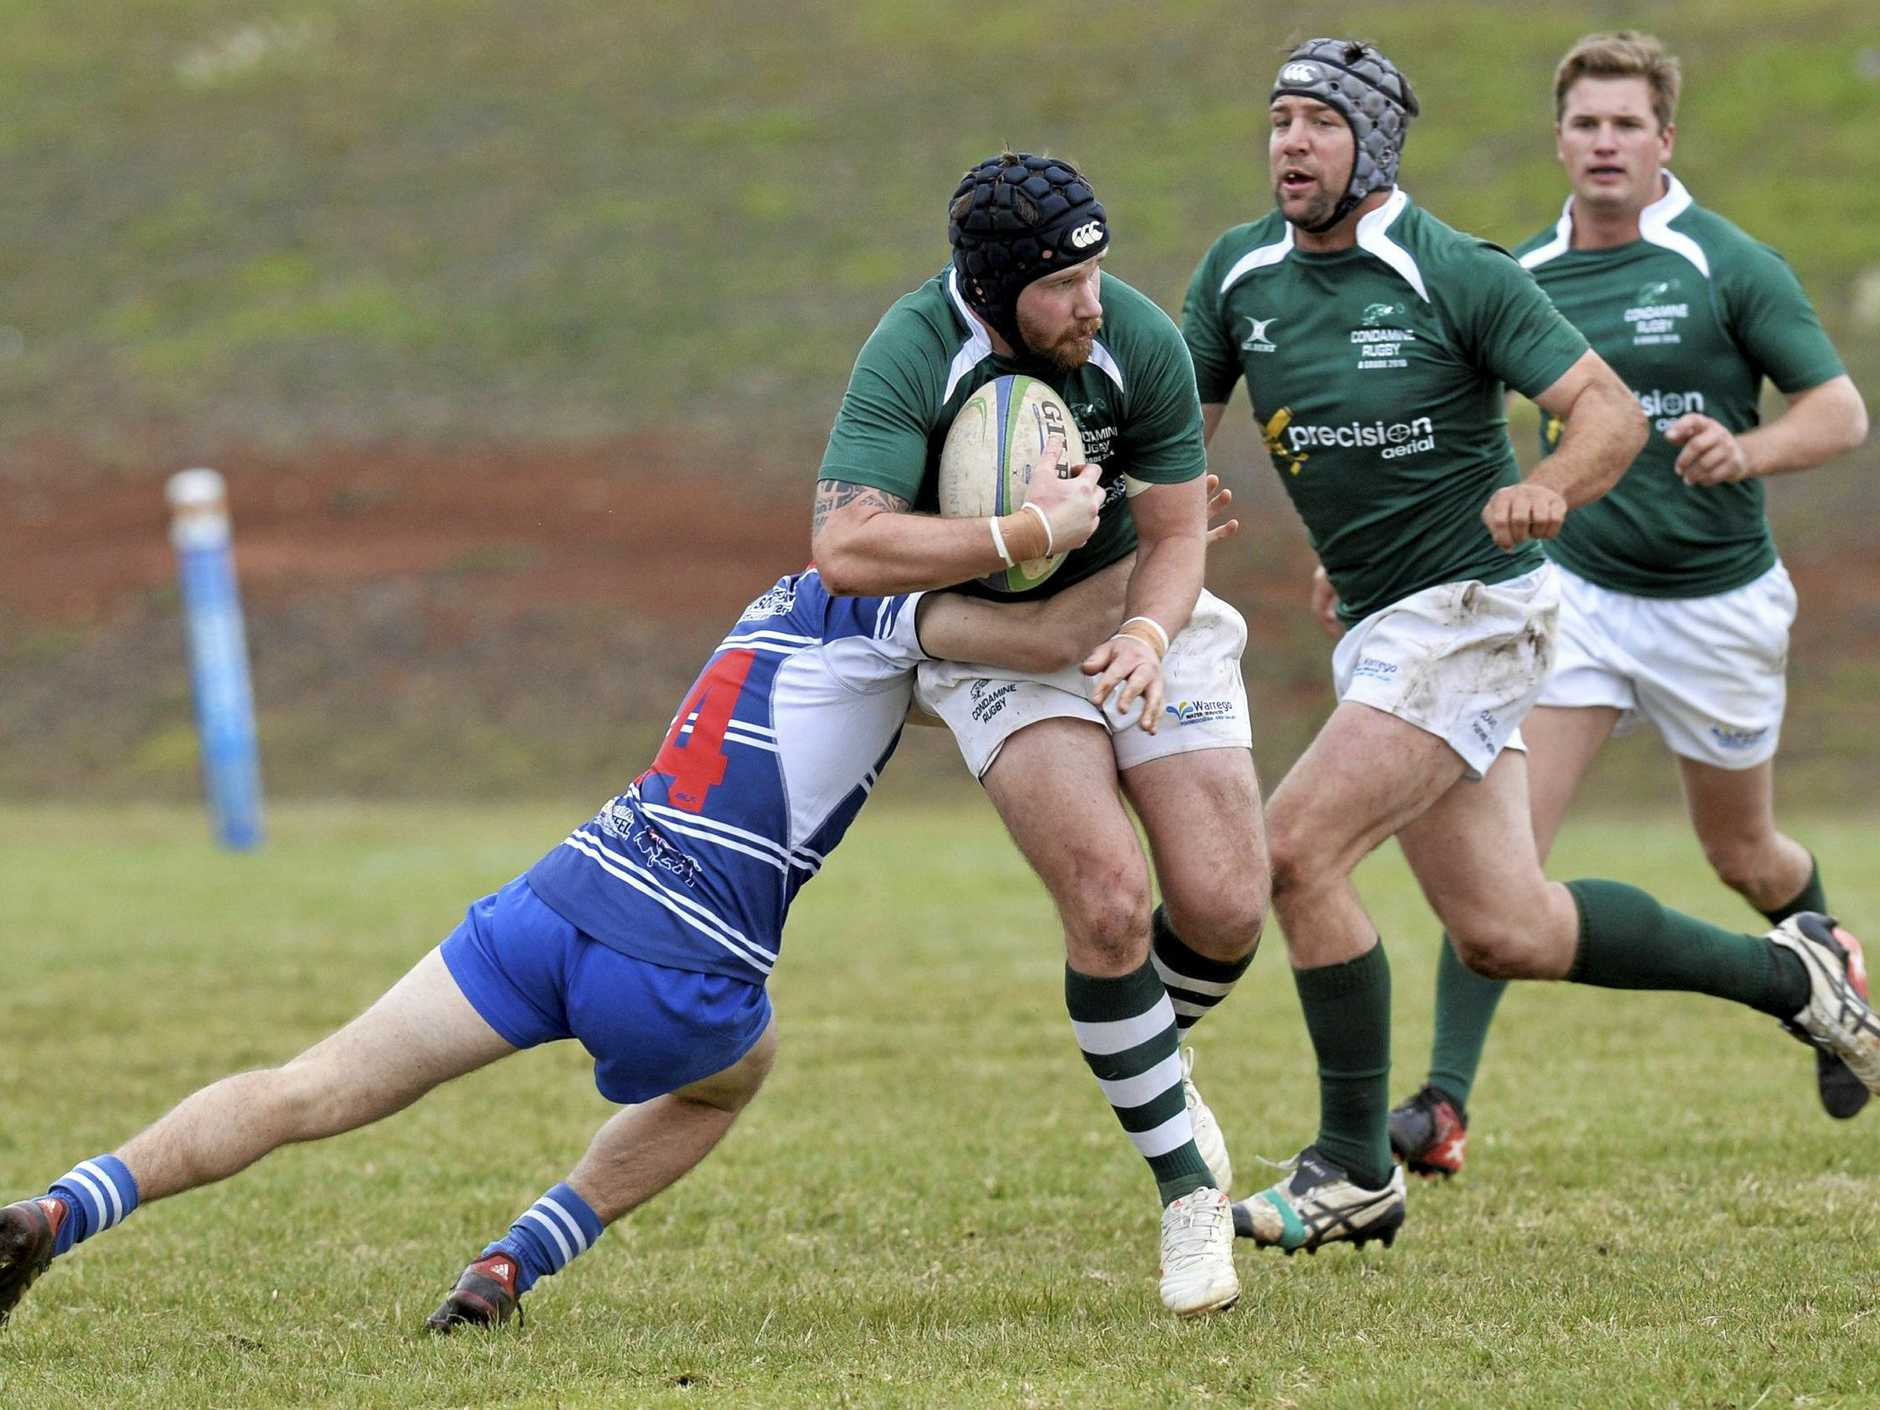 Condamine's Kim McGregor is caught by a USQ defender during last week's round-10 Risdon Cup match at USQ Oval.